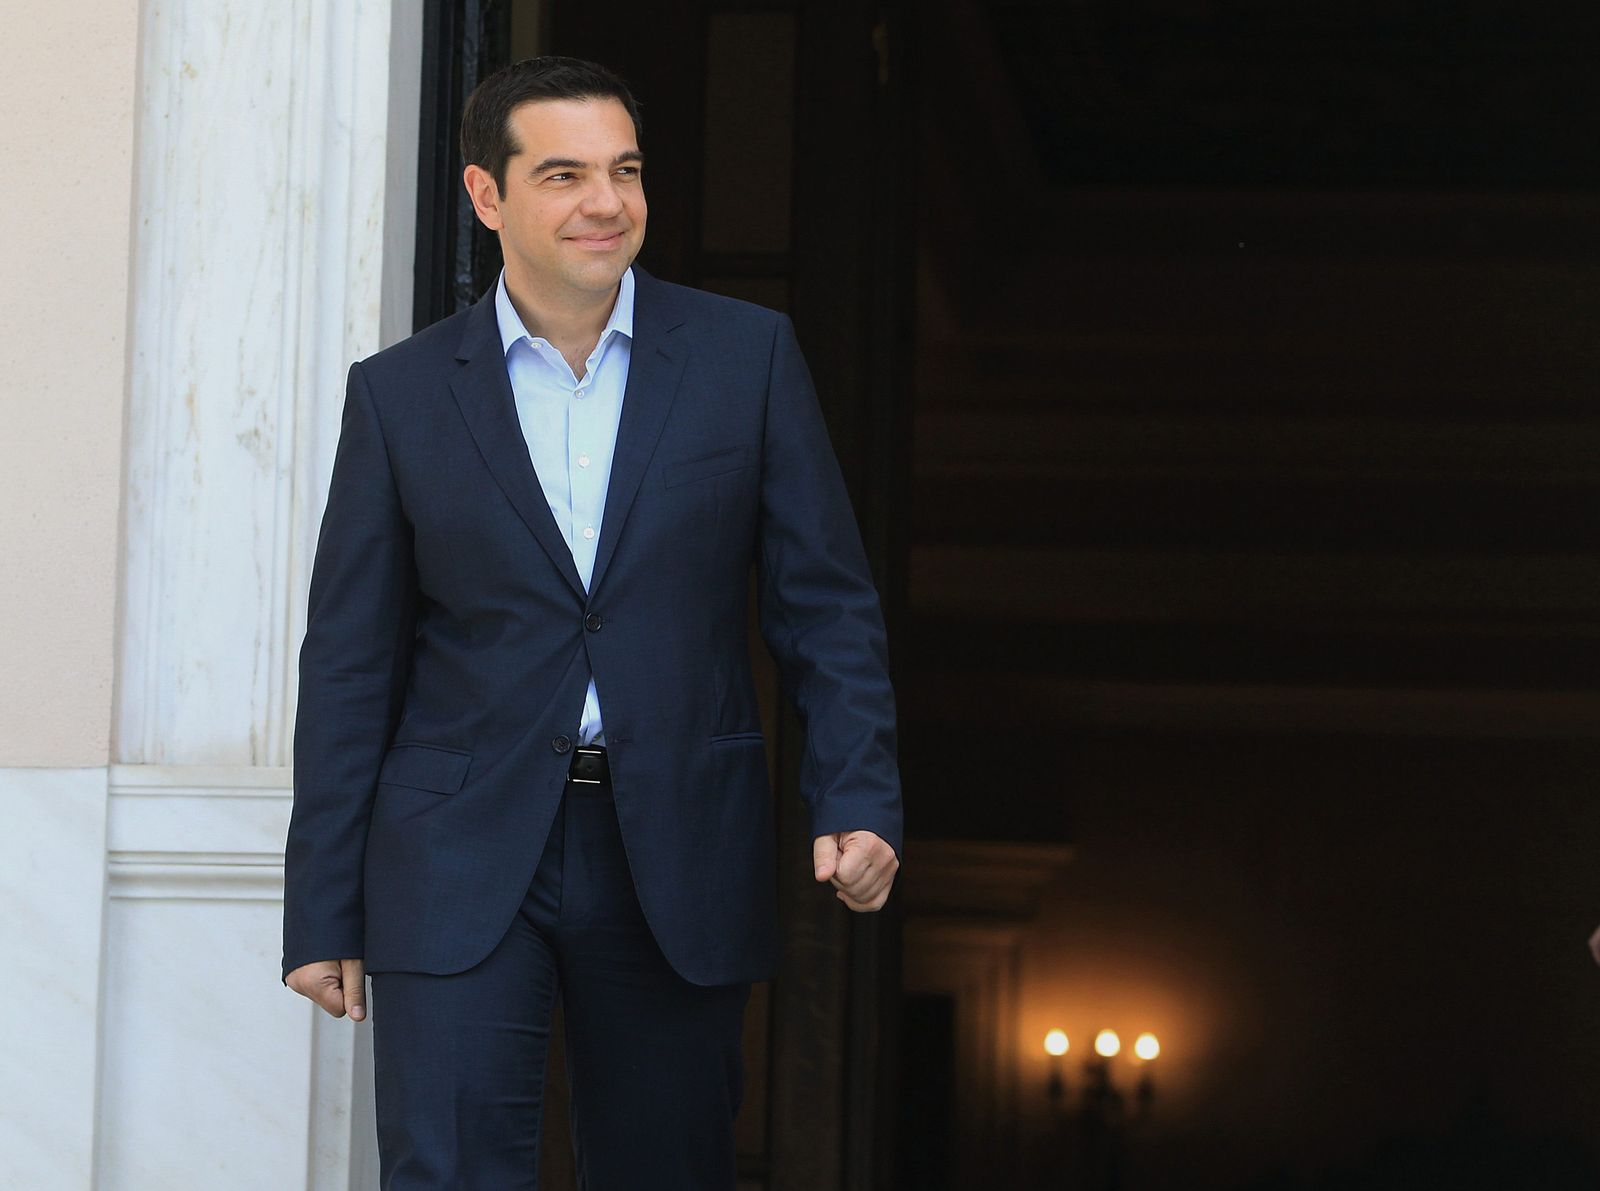 Greek Prime Minister Alexis Tsipras meets the laid-off cleaners o